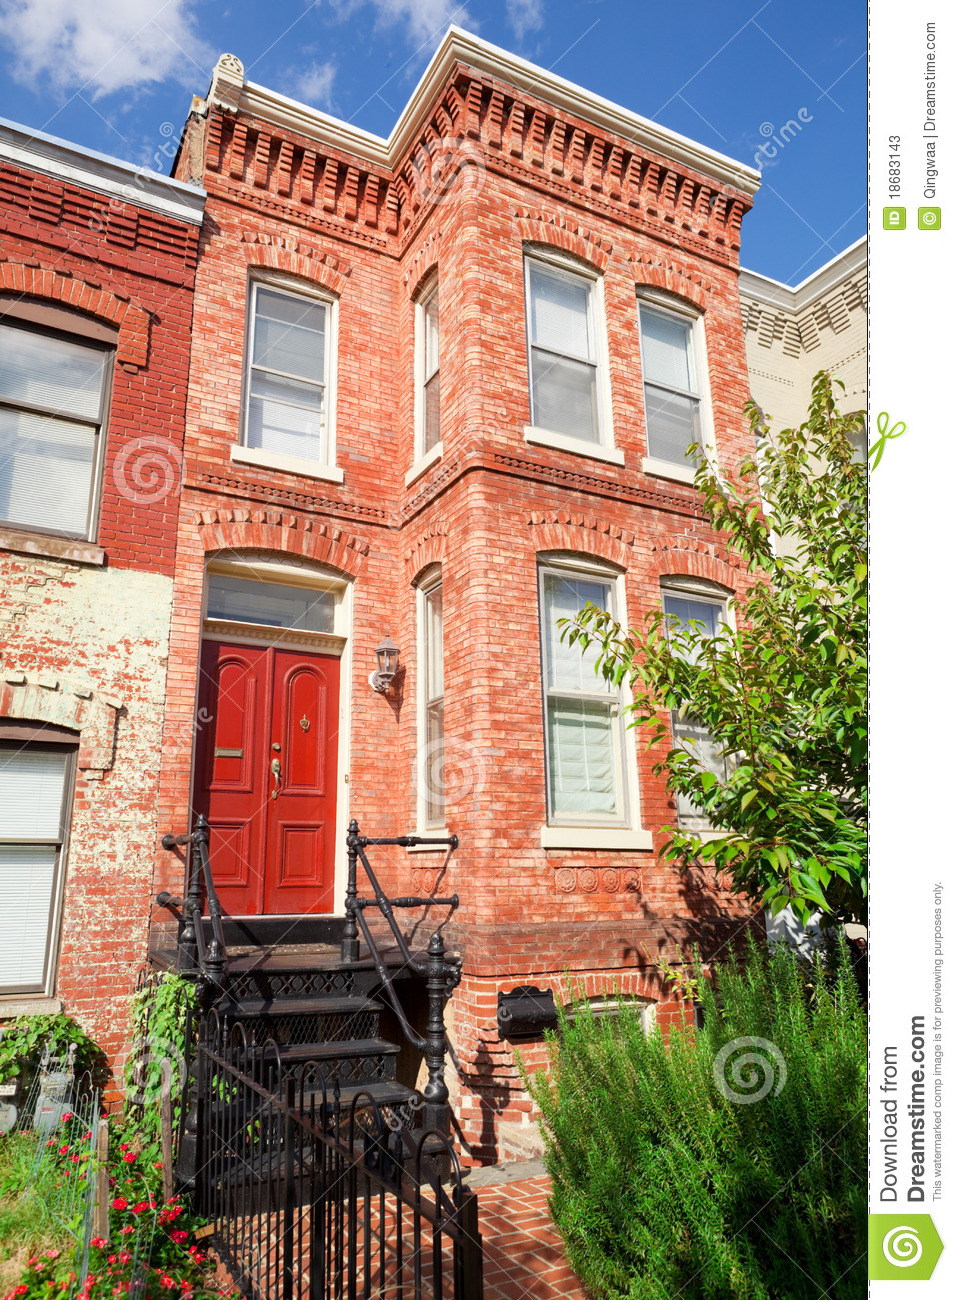 Carpenter Gothic 1840 1870 besides Citroen House Pumps Escape Floods Billionaire Plans New 4million Mansion Hydraulic Stilts Safe Rising Sea Levels in addition Wwe Charlotte Name Change likewise Stock Photos Red Brick Italianate Row House Home Washington Dc Image18683143 together with Church Birdhouse Plans. on old country house plans